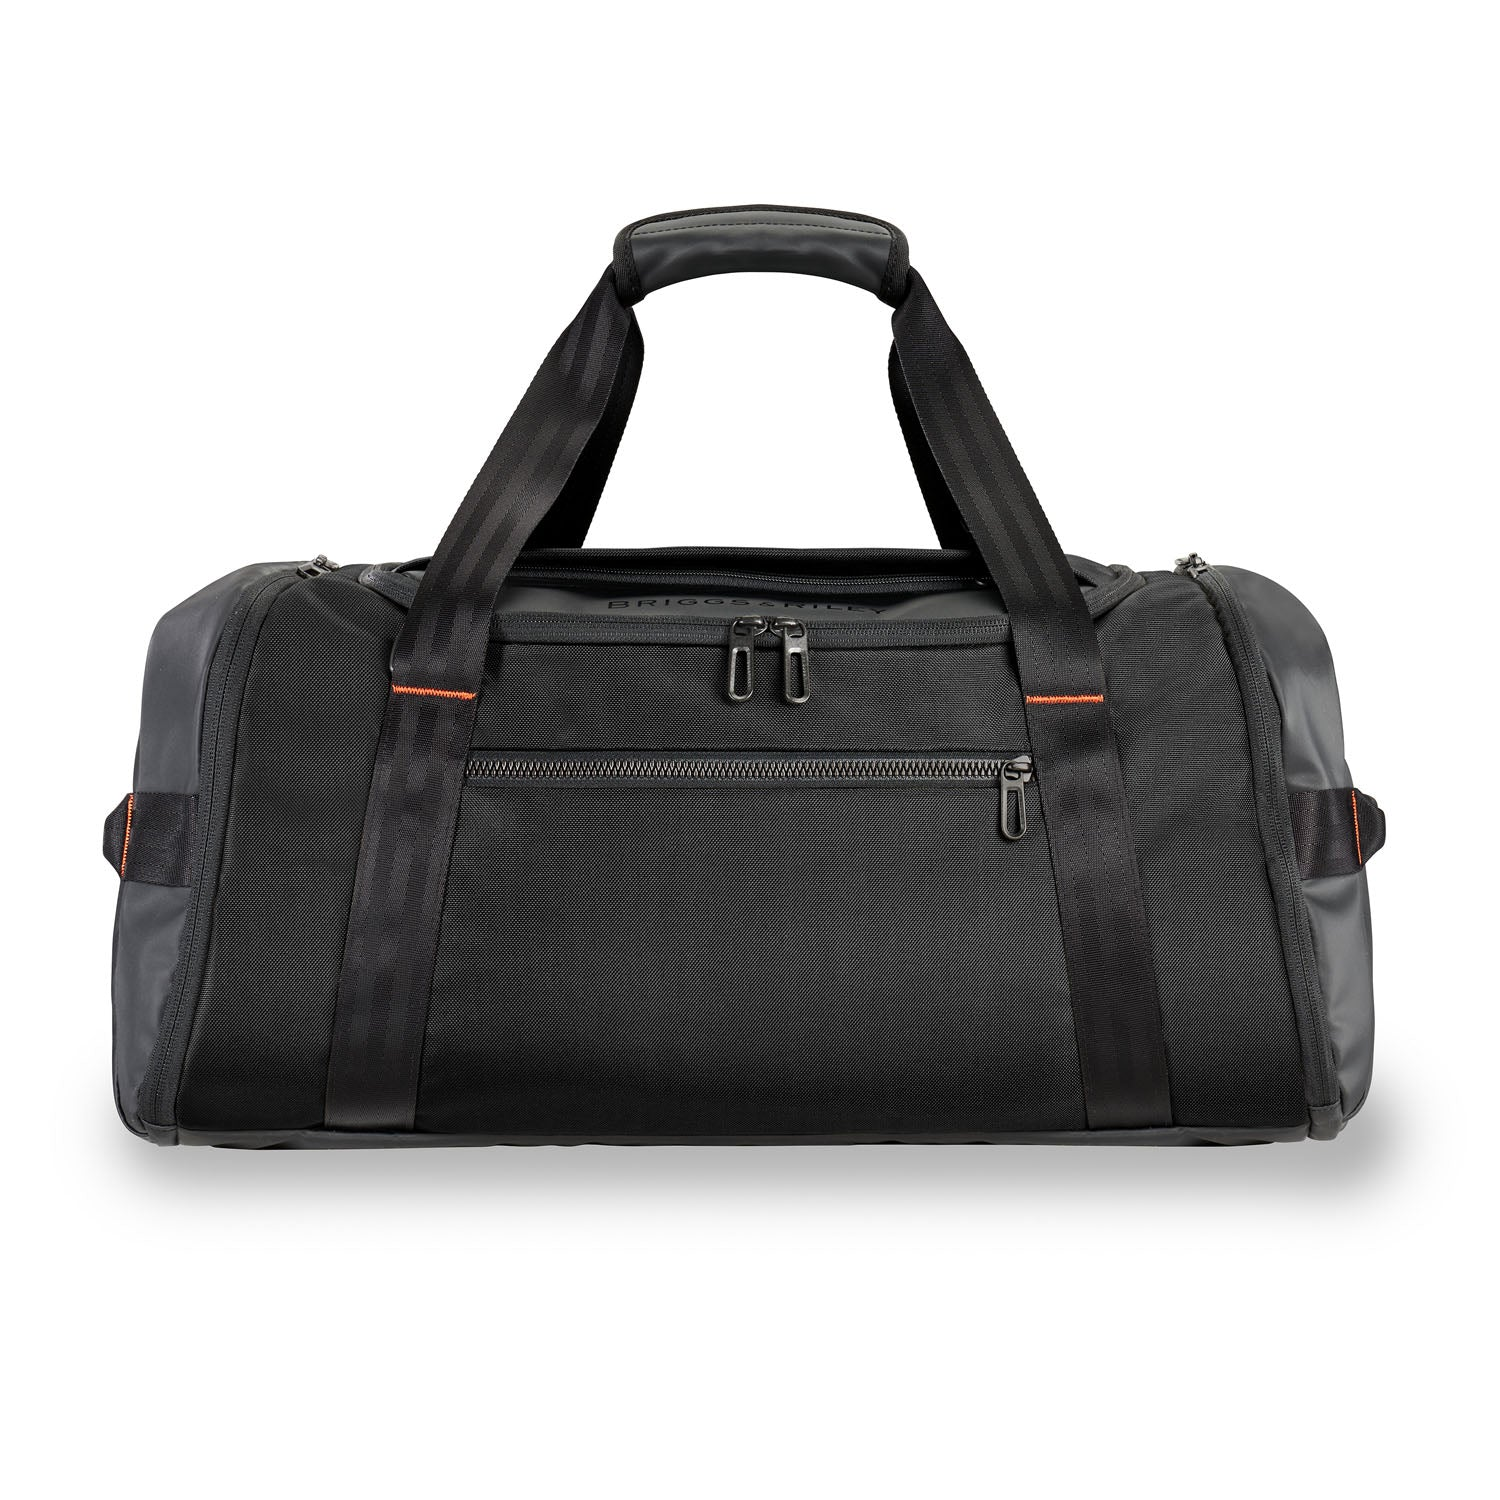 Large Travel Duffle